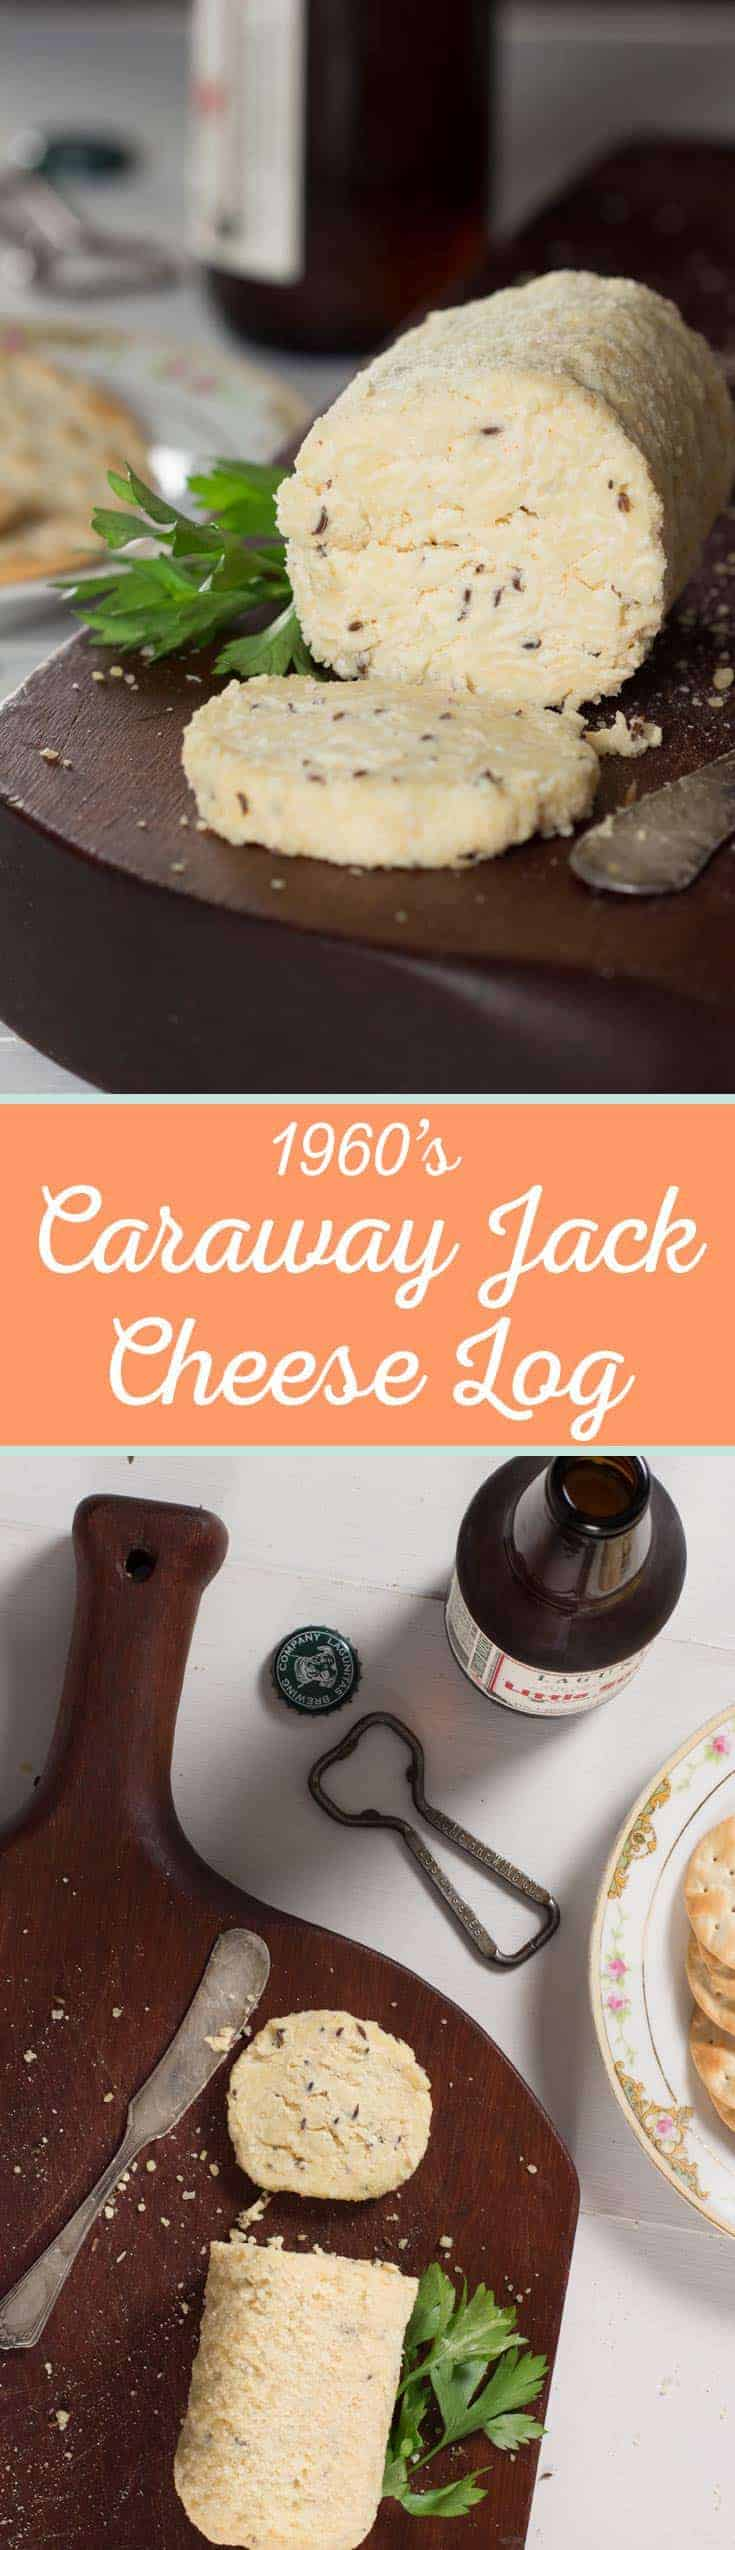 Caraway Jack Cheese Log - This vintage recipe from the 1960's is packed with flavor and perfect for any retro themed party! - cupofzest.com